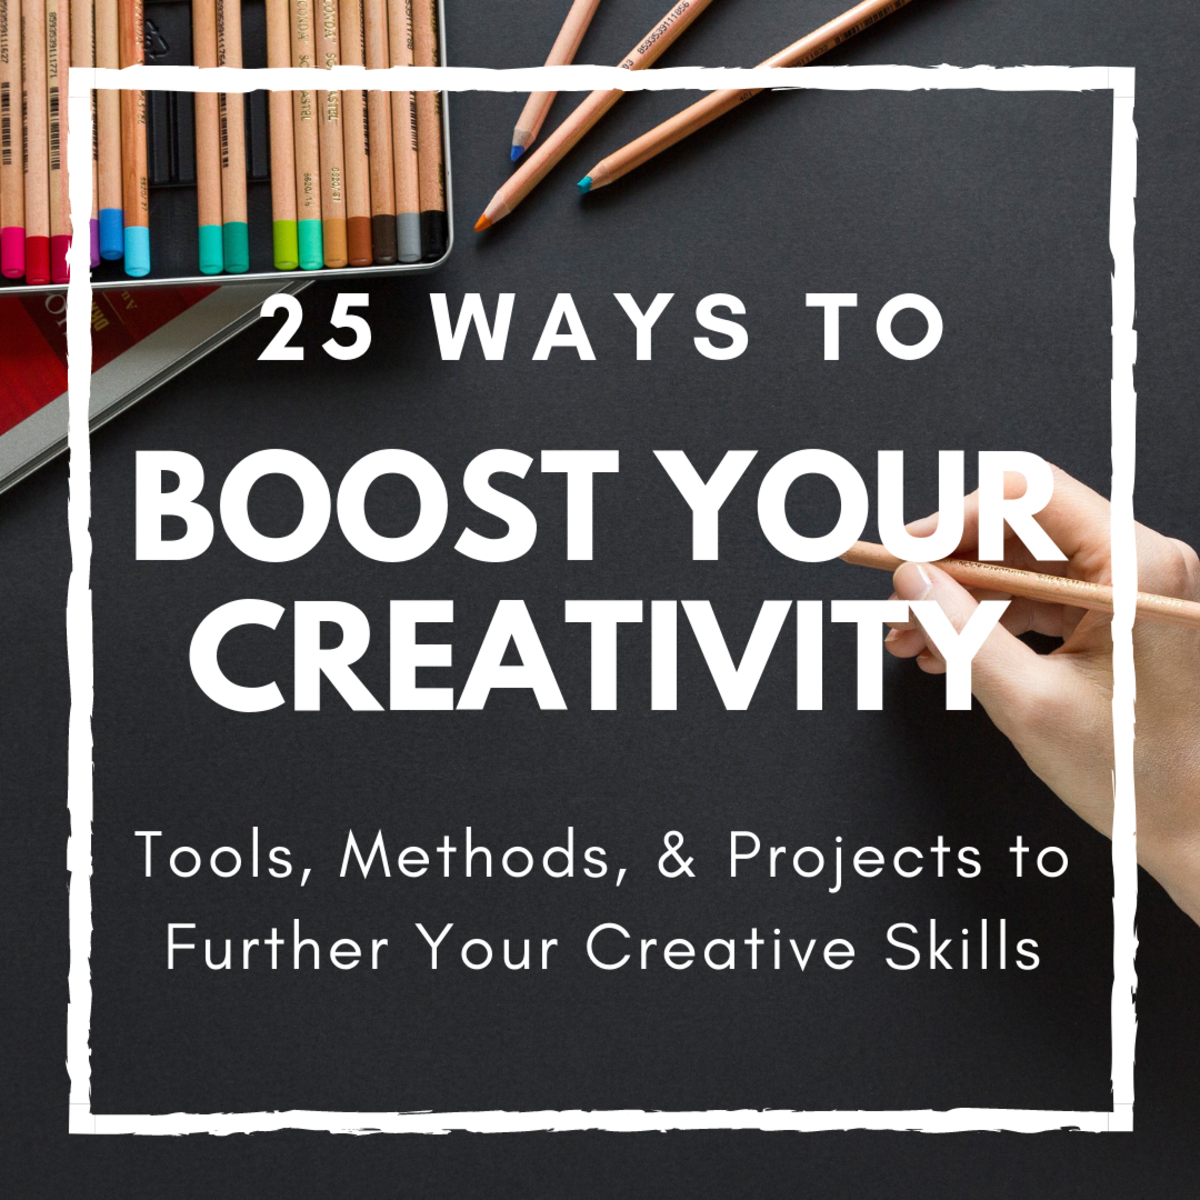 These tips will help you increase your creative output.